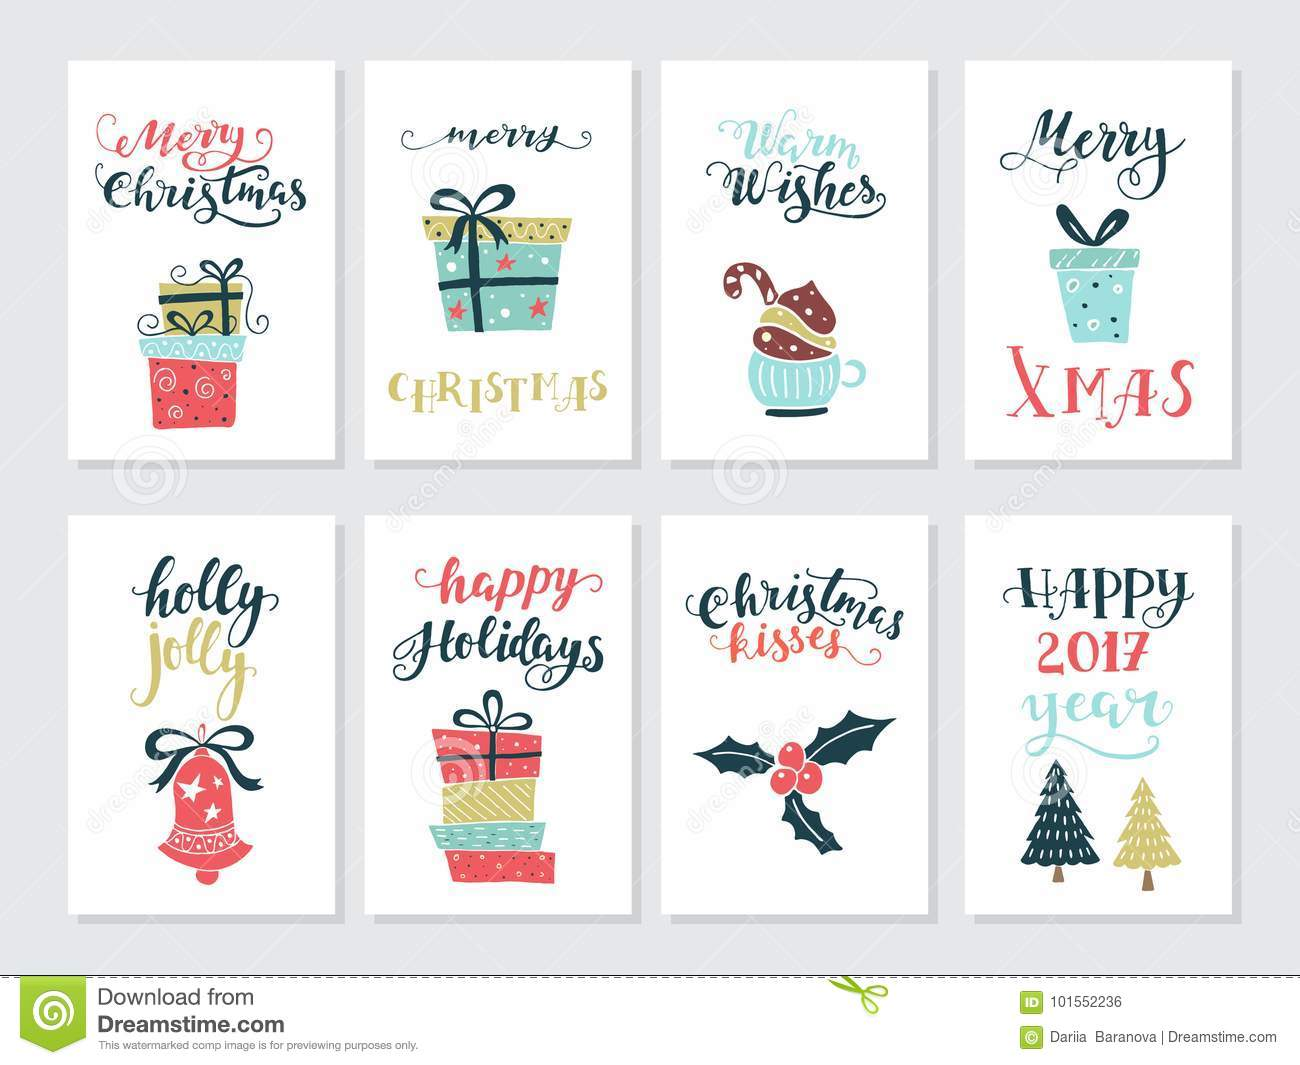 christmas greetings cards - Christmas Phrases For Cards